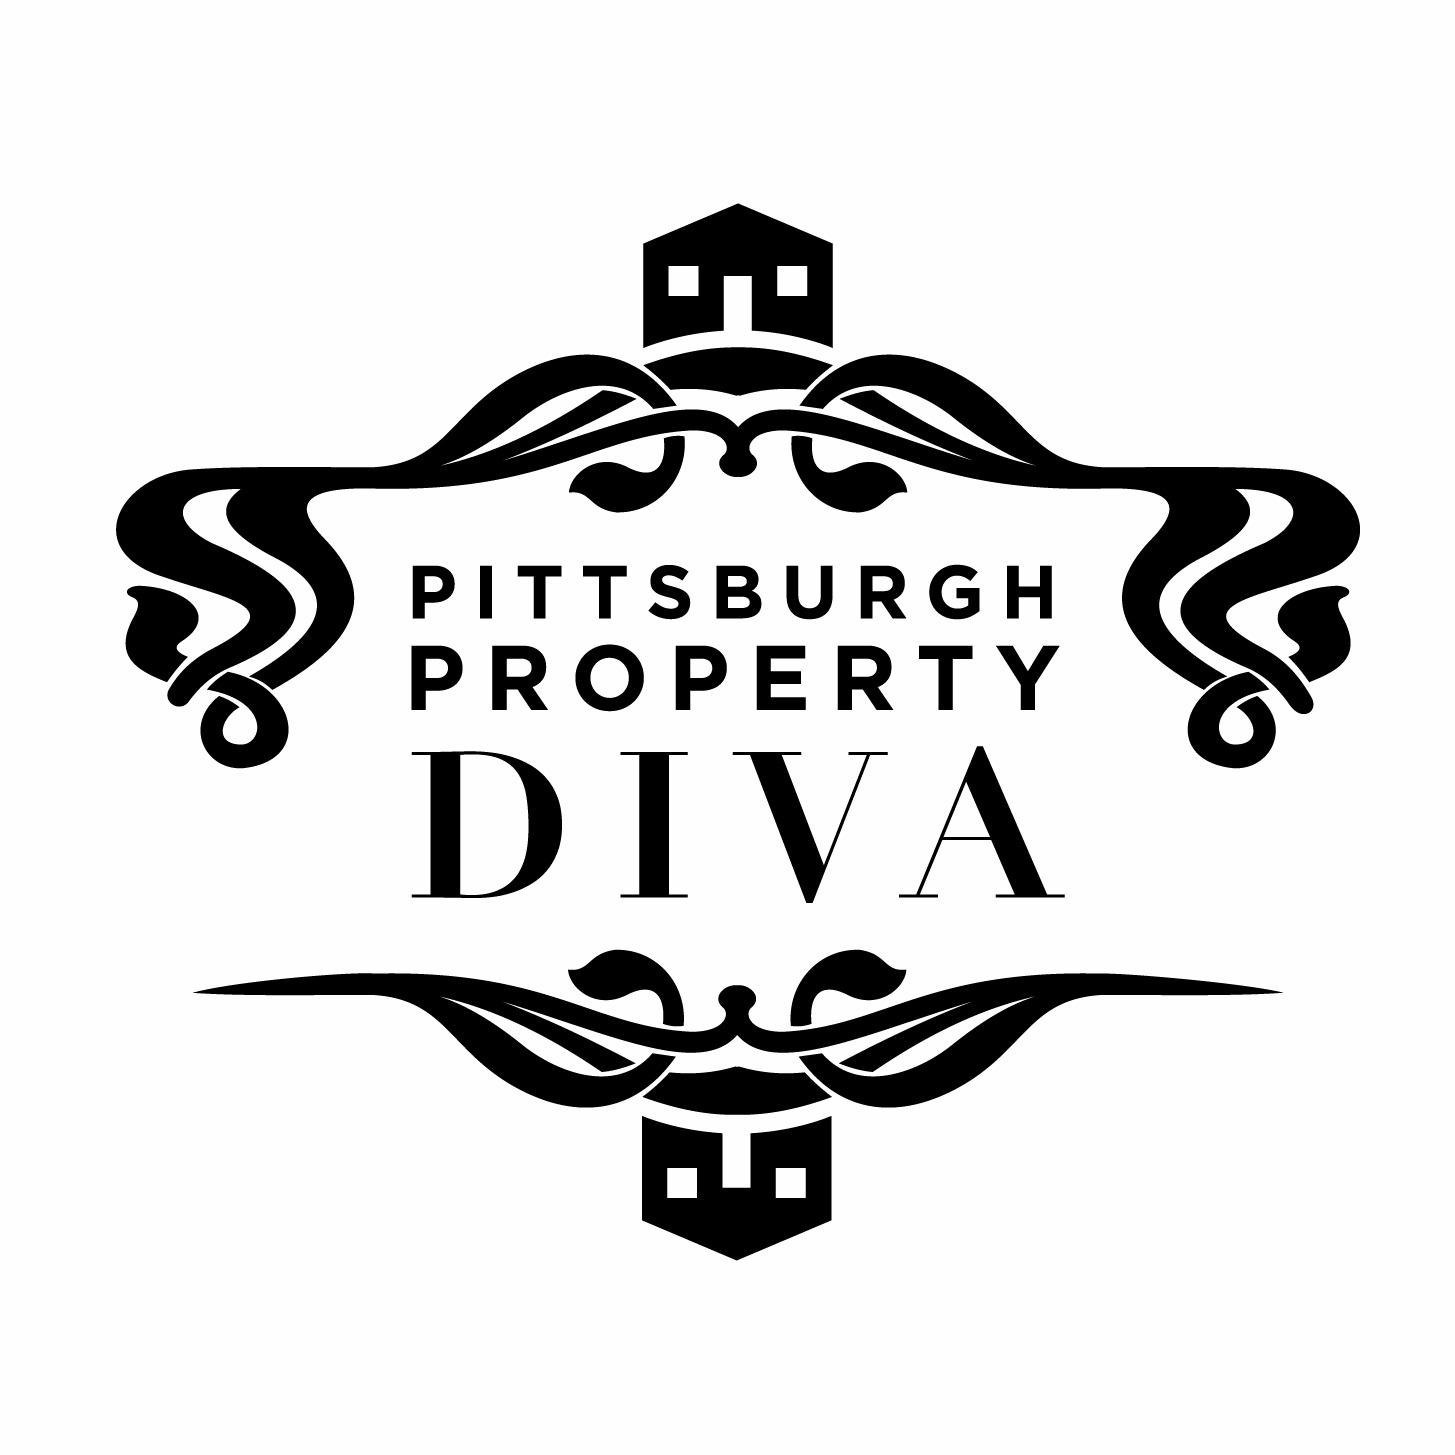 Pittsburgh Property Diva